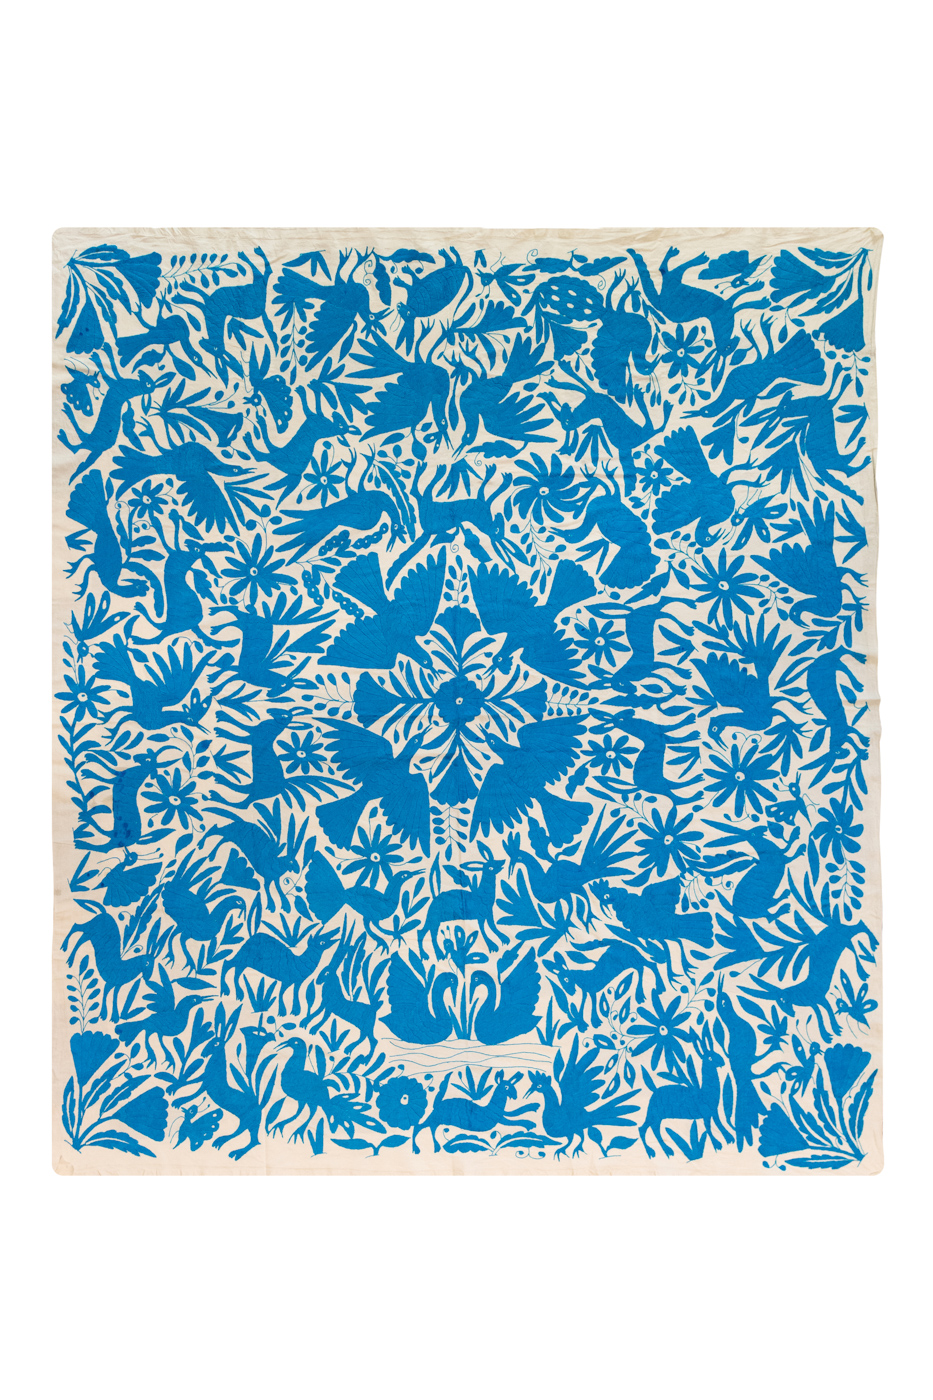 Mexican Otomí decorative fabric with blue birds